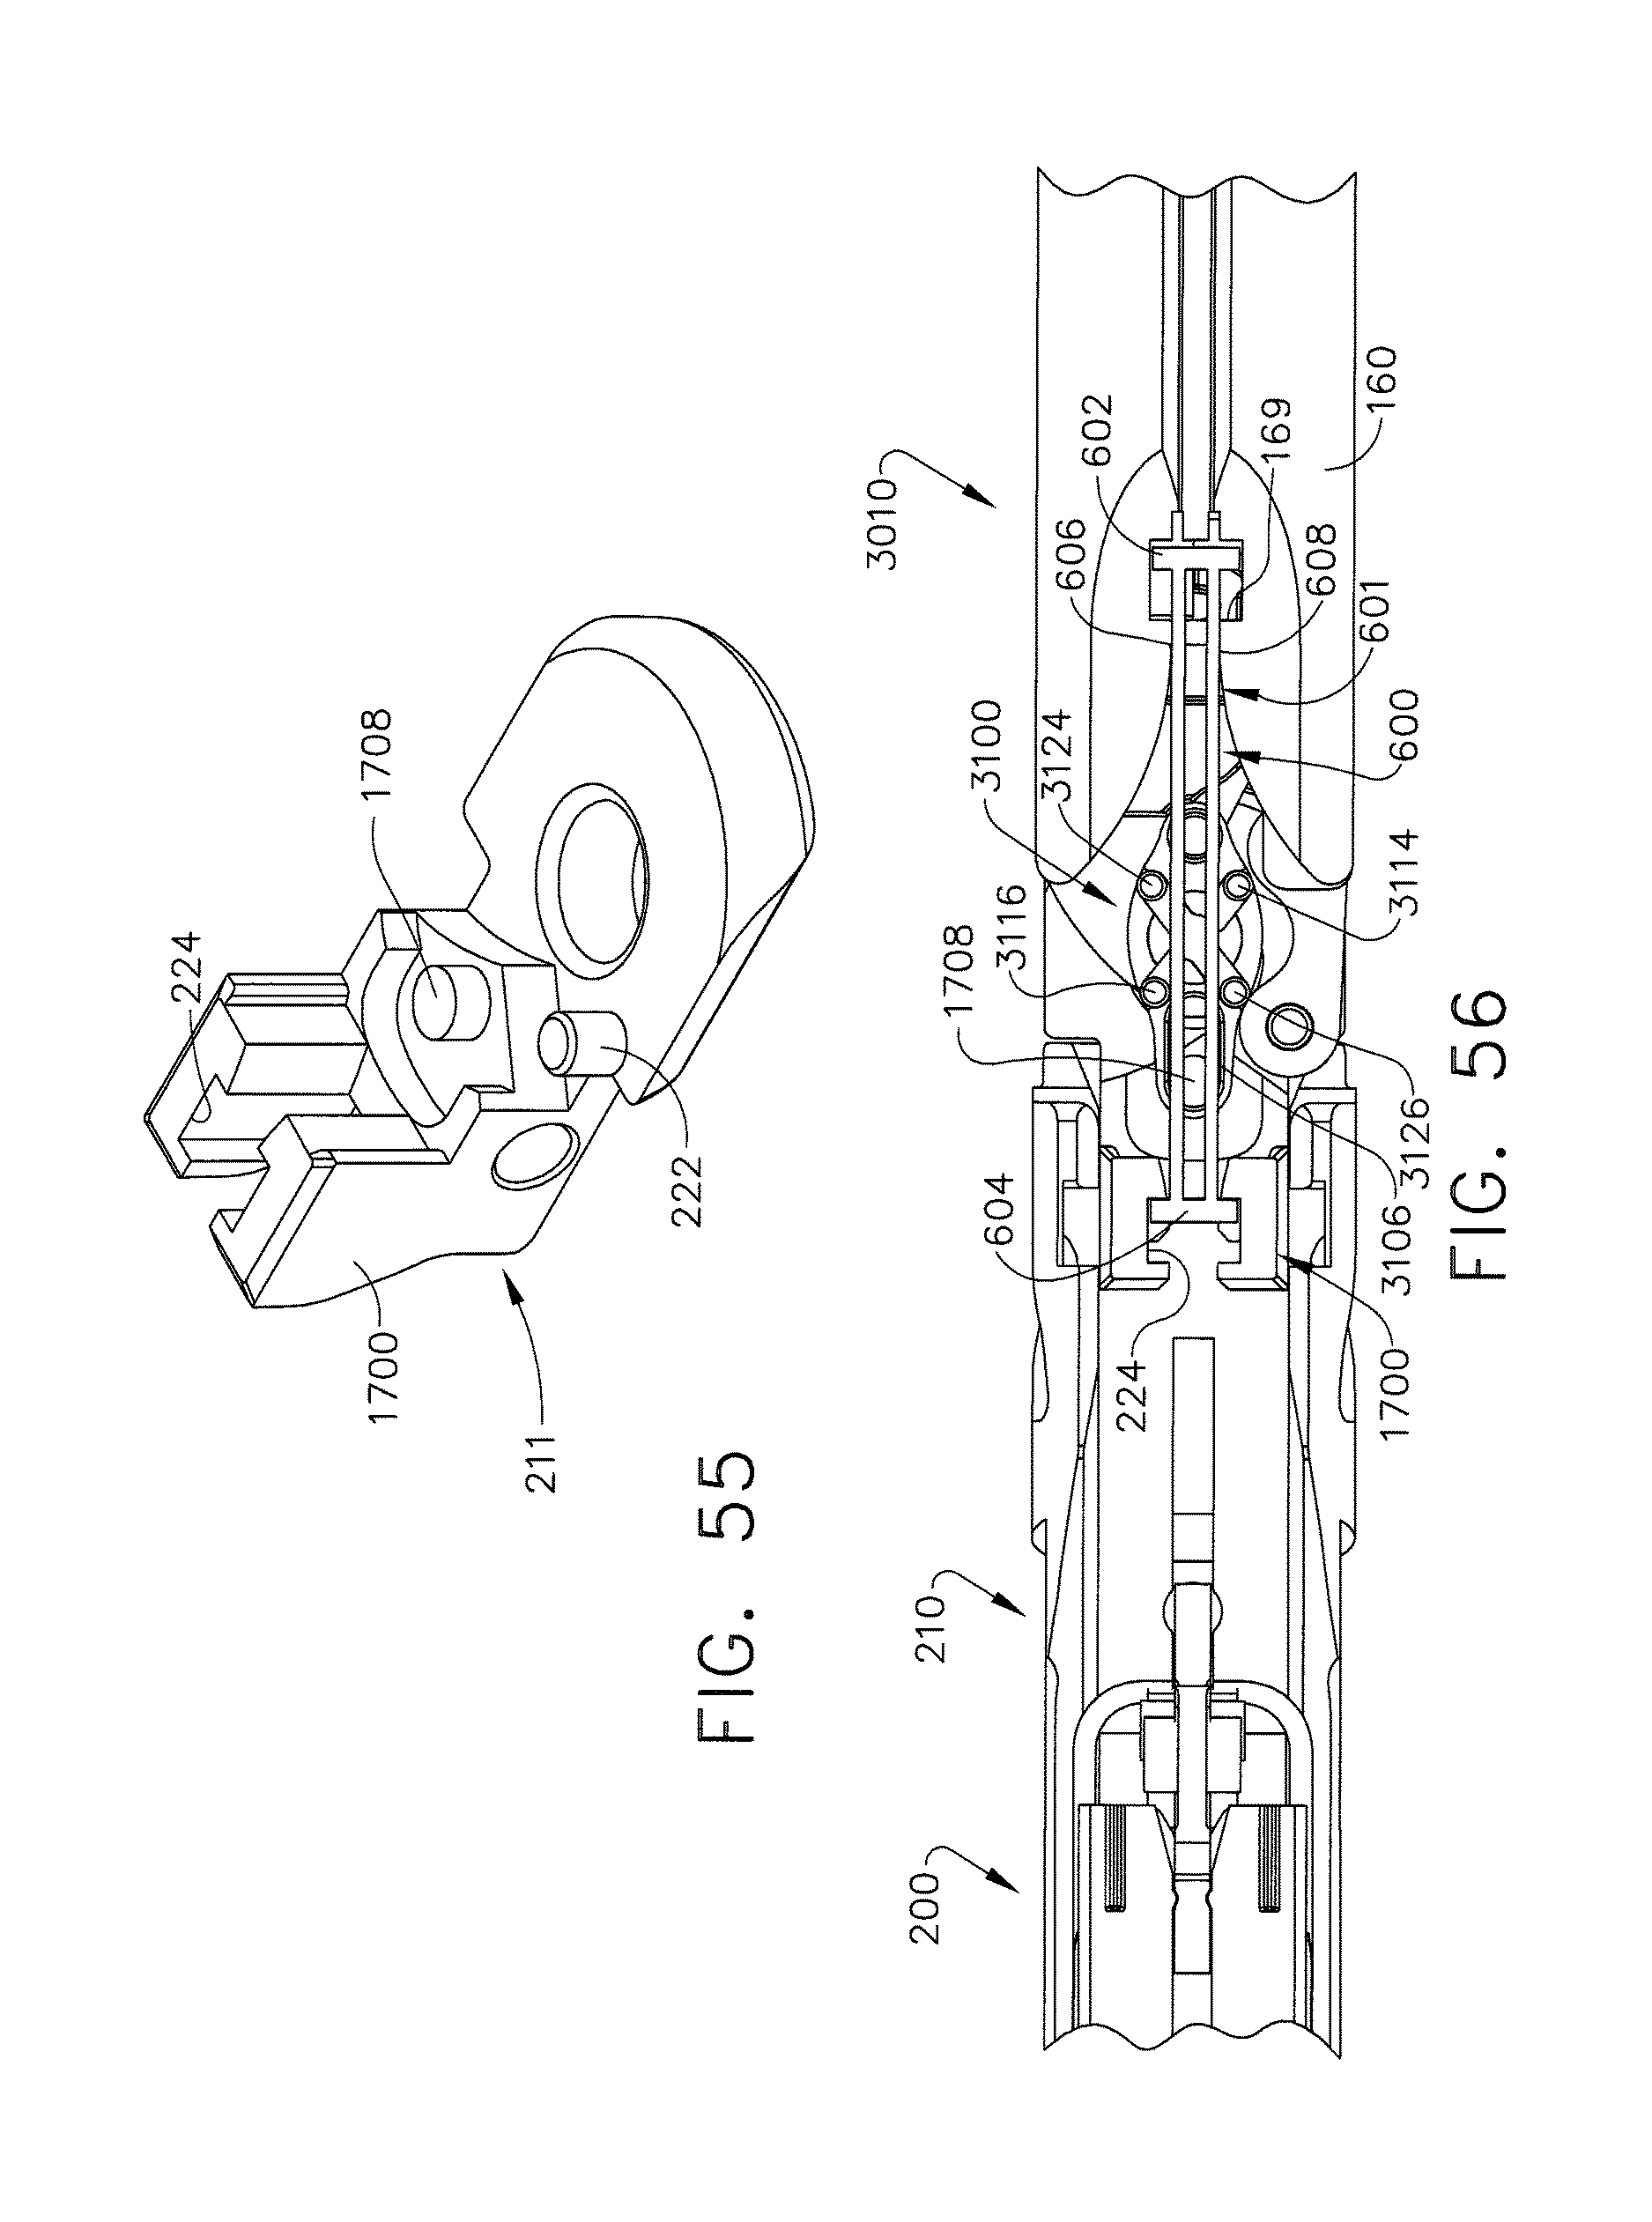 us9943309b2 surgical instruments with articulatable end effectors Dodge Power Steering Diagram us9943309b2 surgical instruments with articulatable end effectors and movable firing beam support arrangements patents